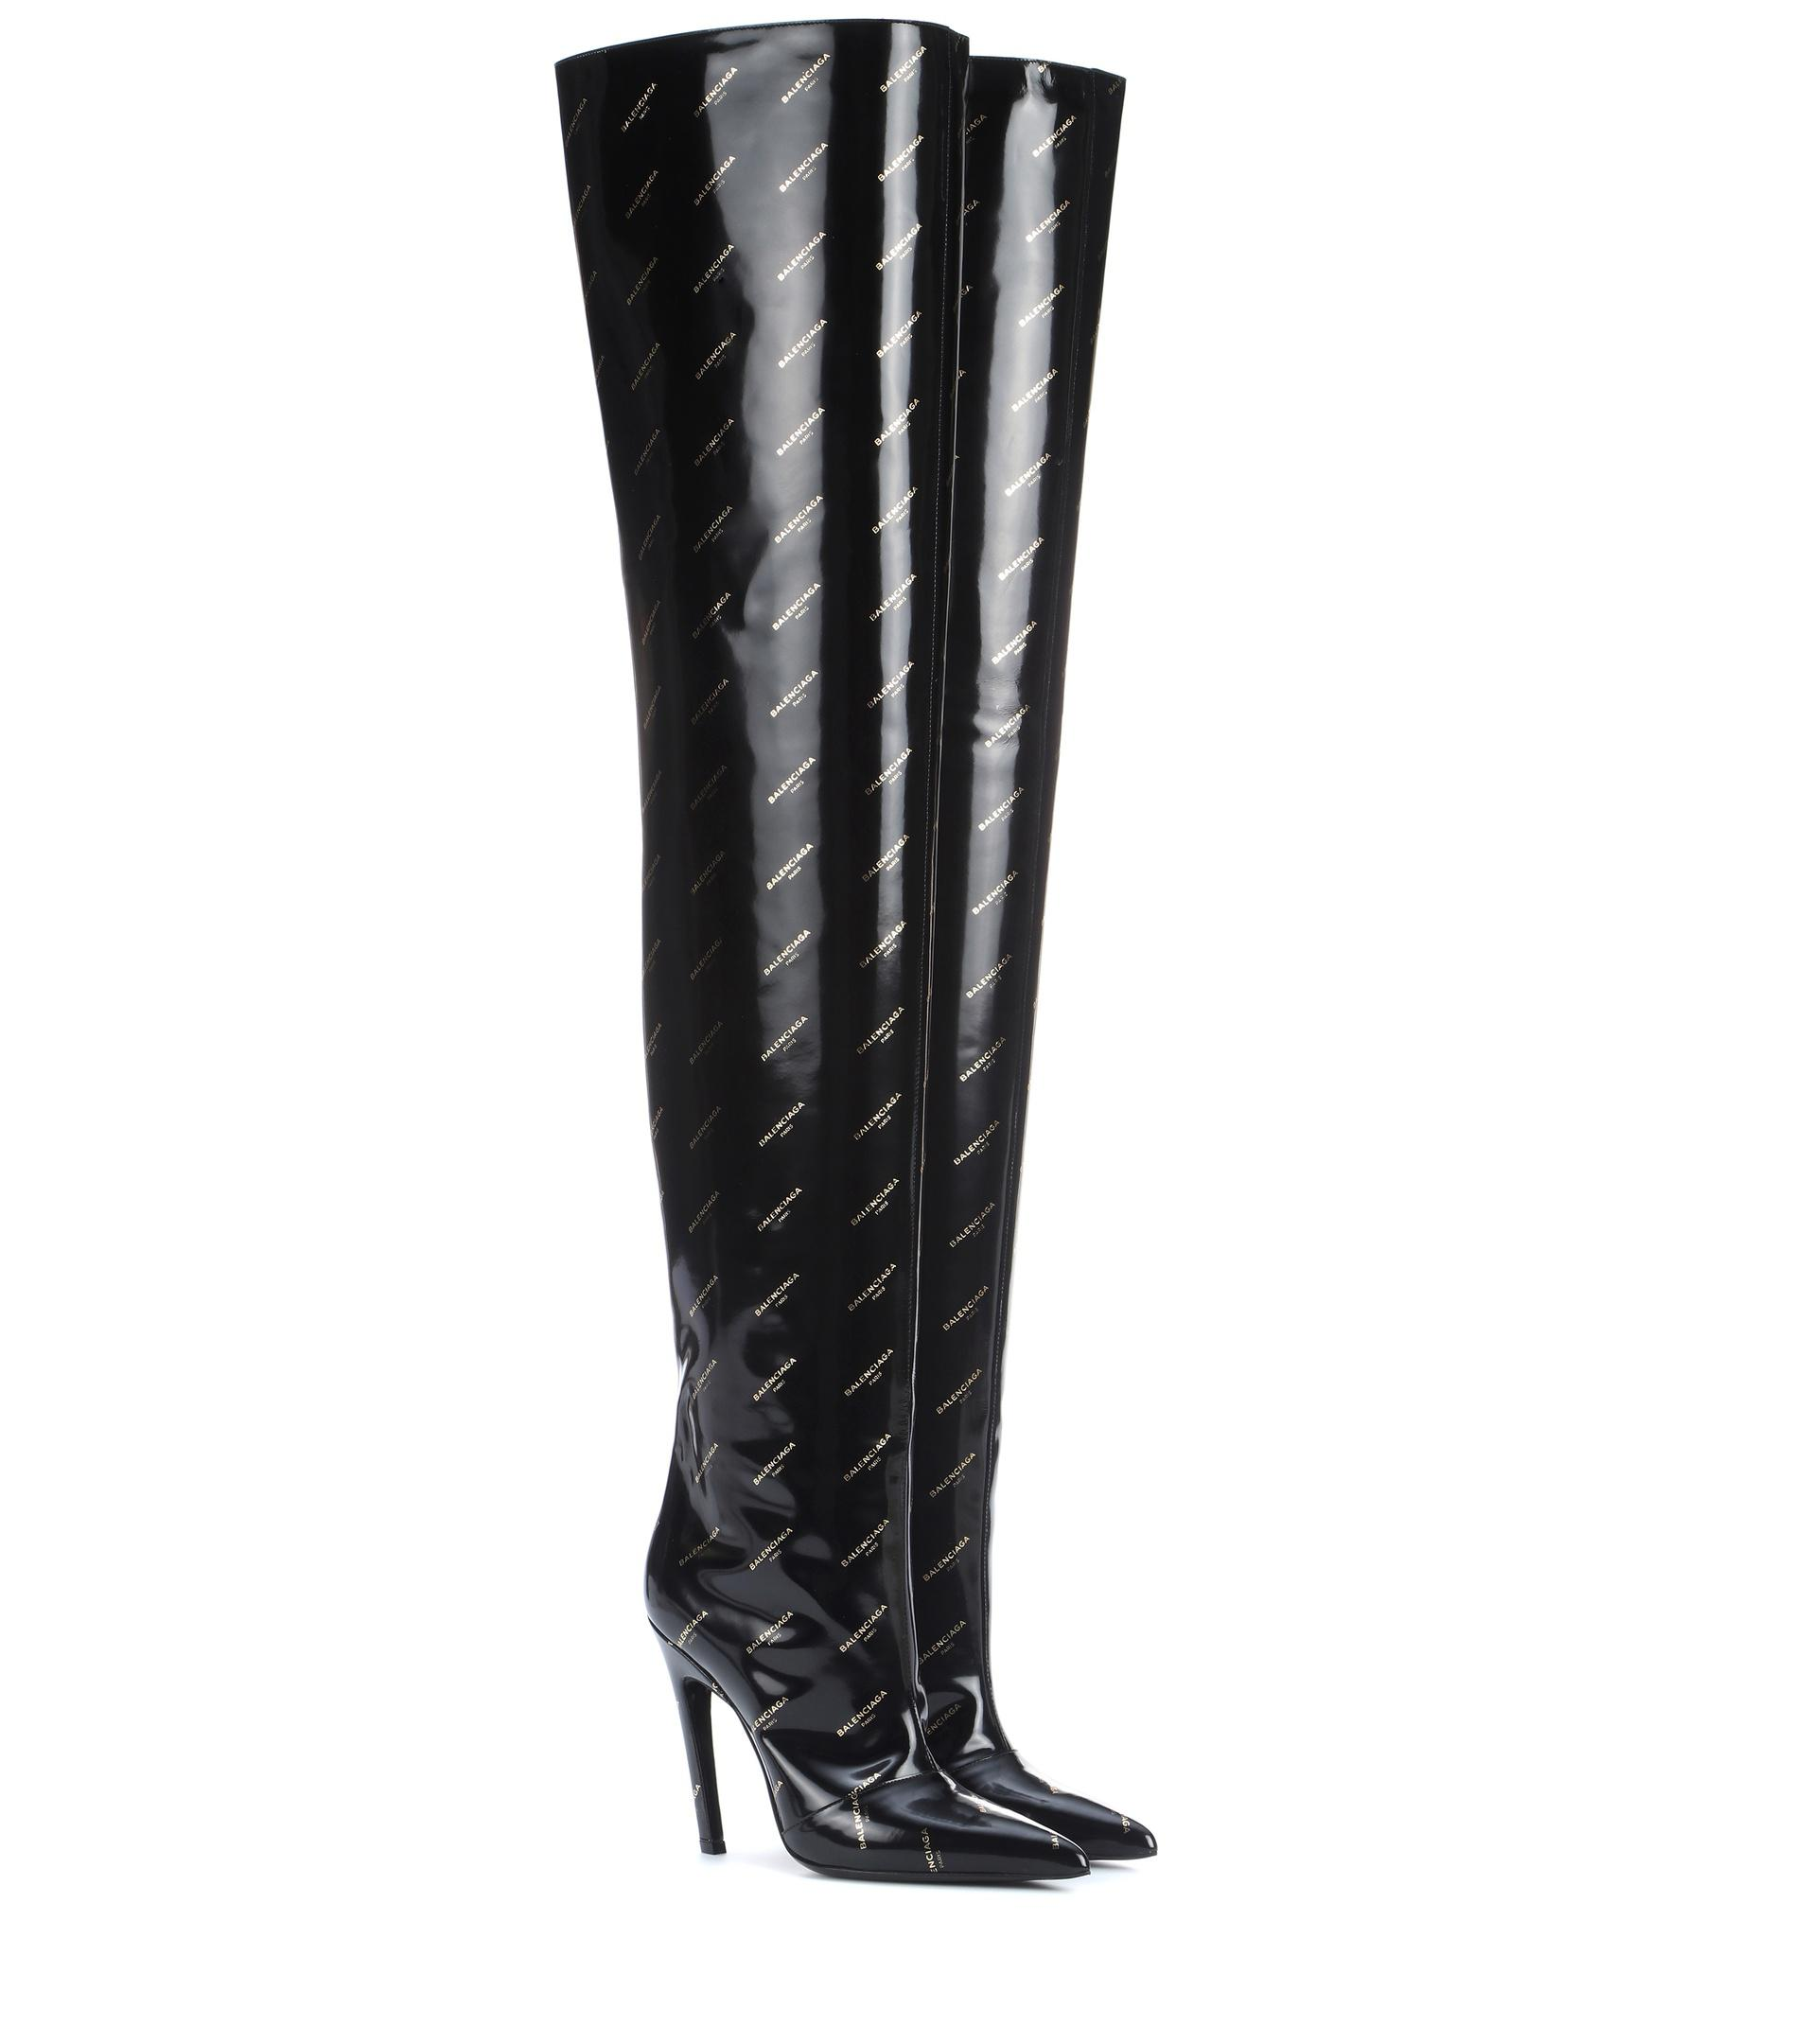 BalenciagaKnife over-the-knee leather boots oa0zd2a6